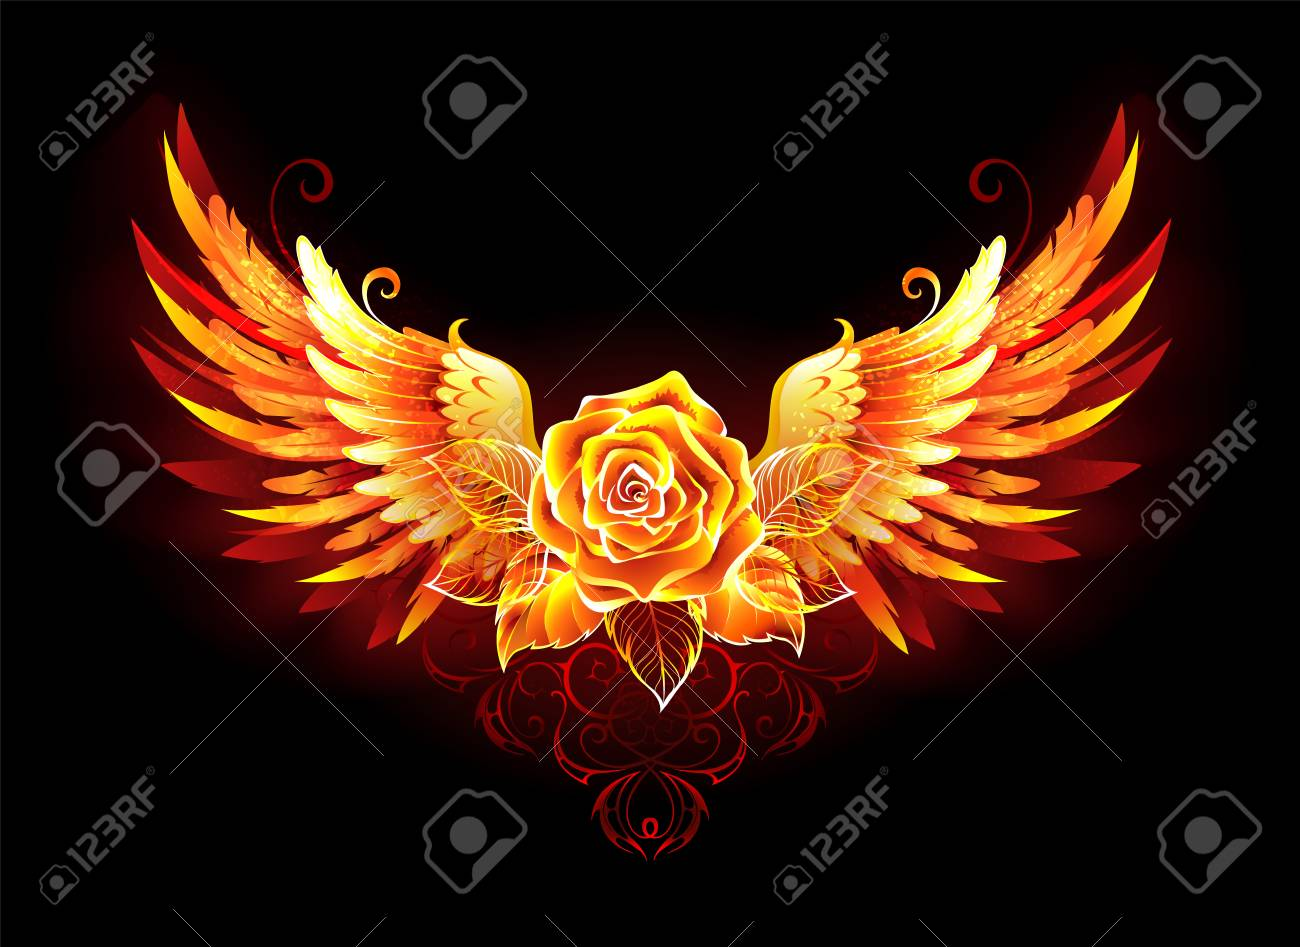 Blossoming fire rose with phoenix wings on black background. - 121562914